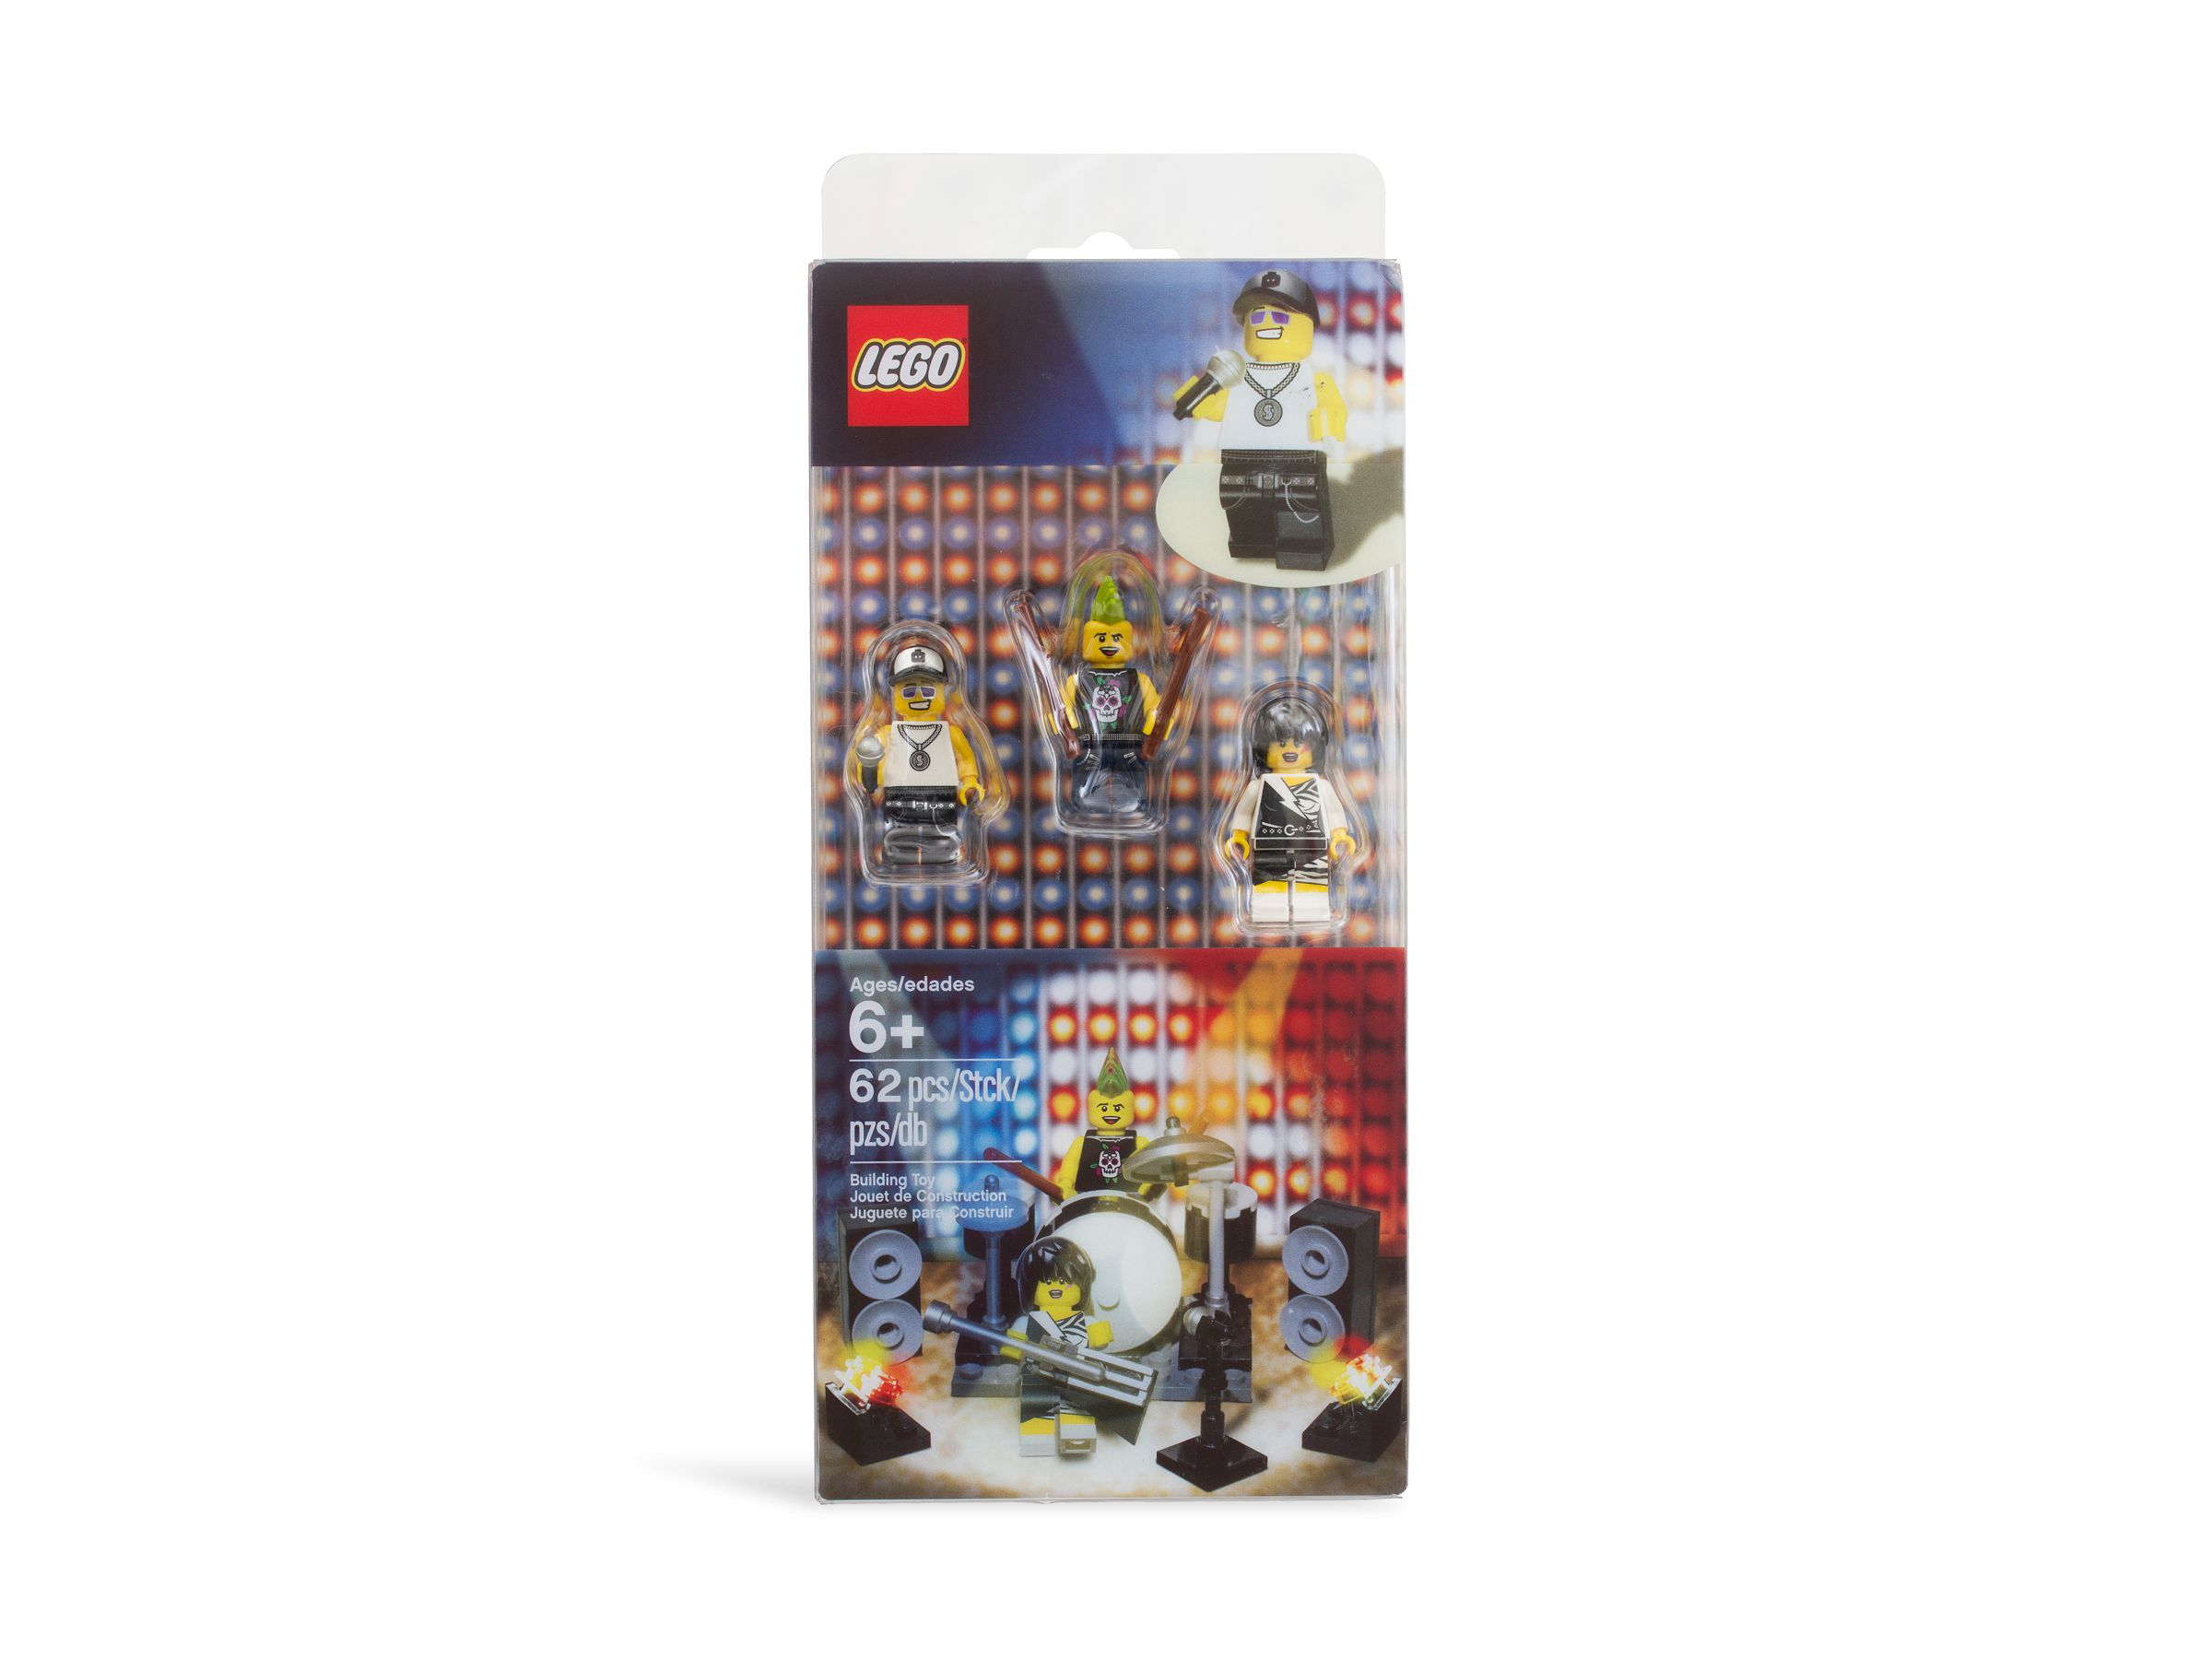 LEGO Collectable Minifigures 850486 Rock Band Minifigure Accessory Set LEGO_850486_alt1.jpg